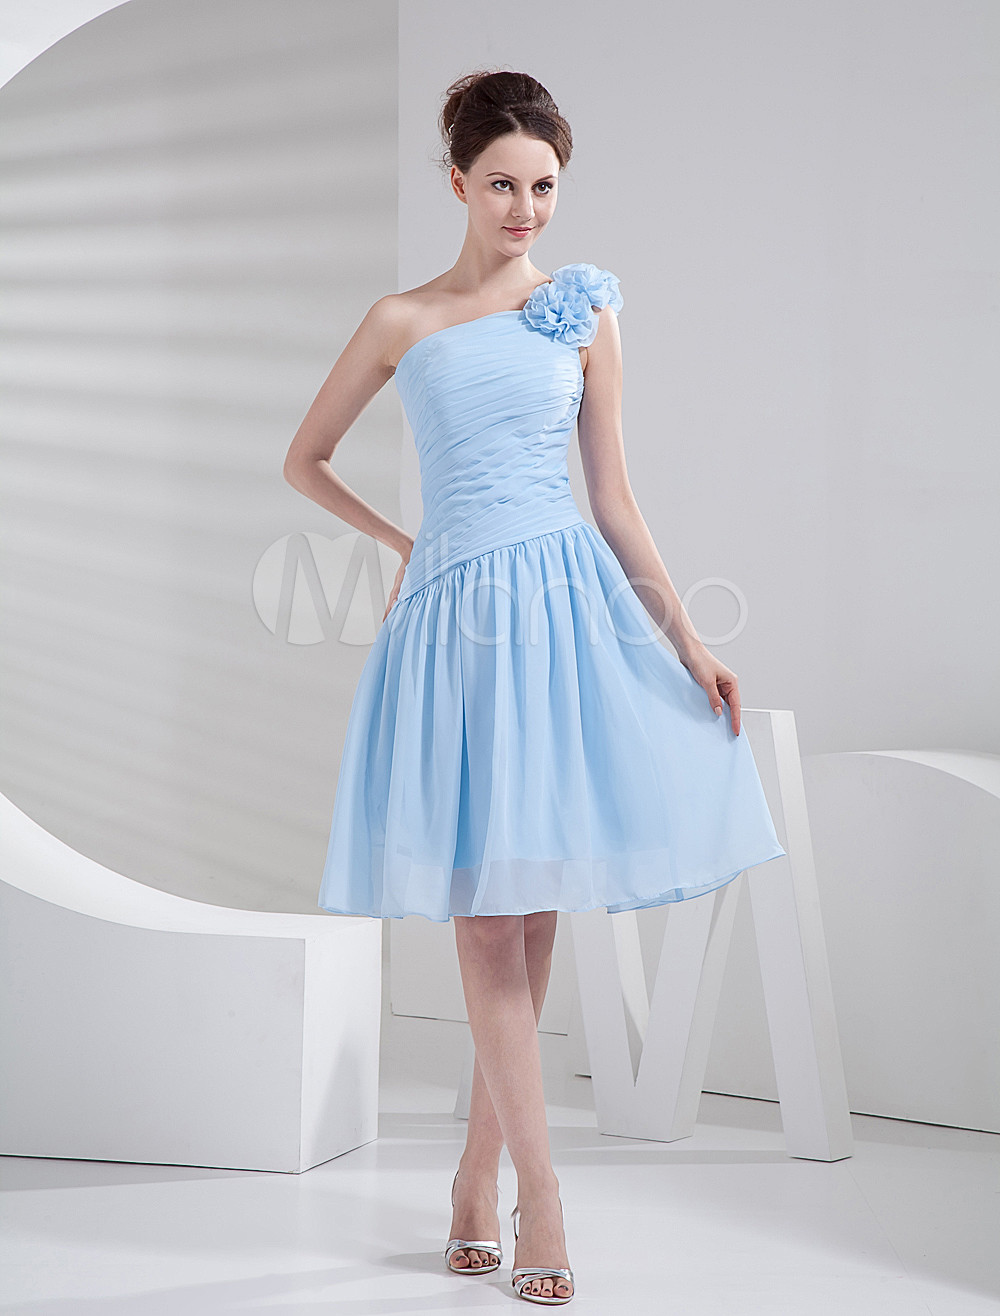 Short Bridesmaid Dress Baby Blue Ruched Chiffon A Line One Shoulder Flower Cocktail Dress